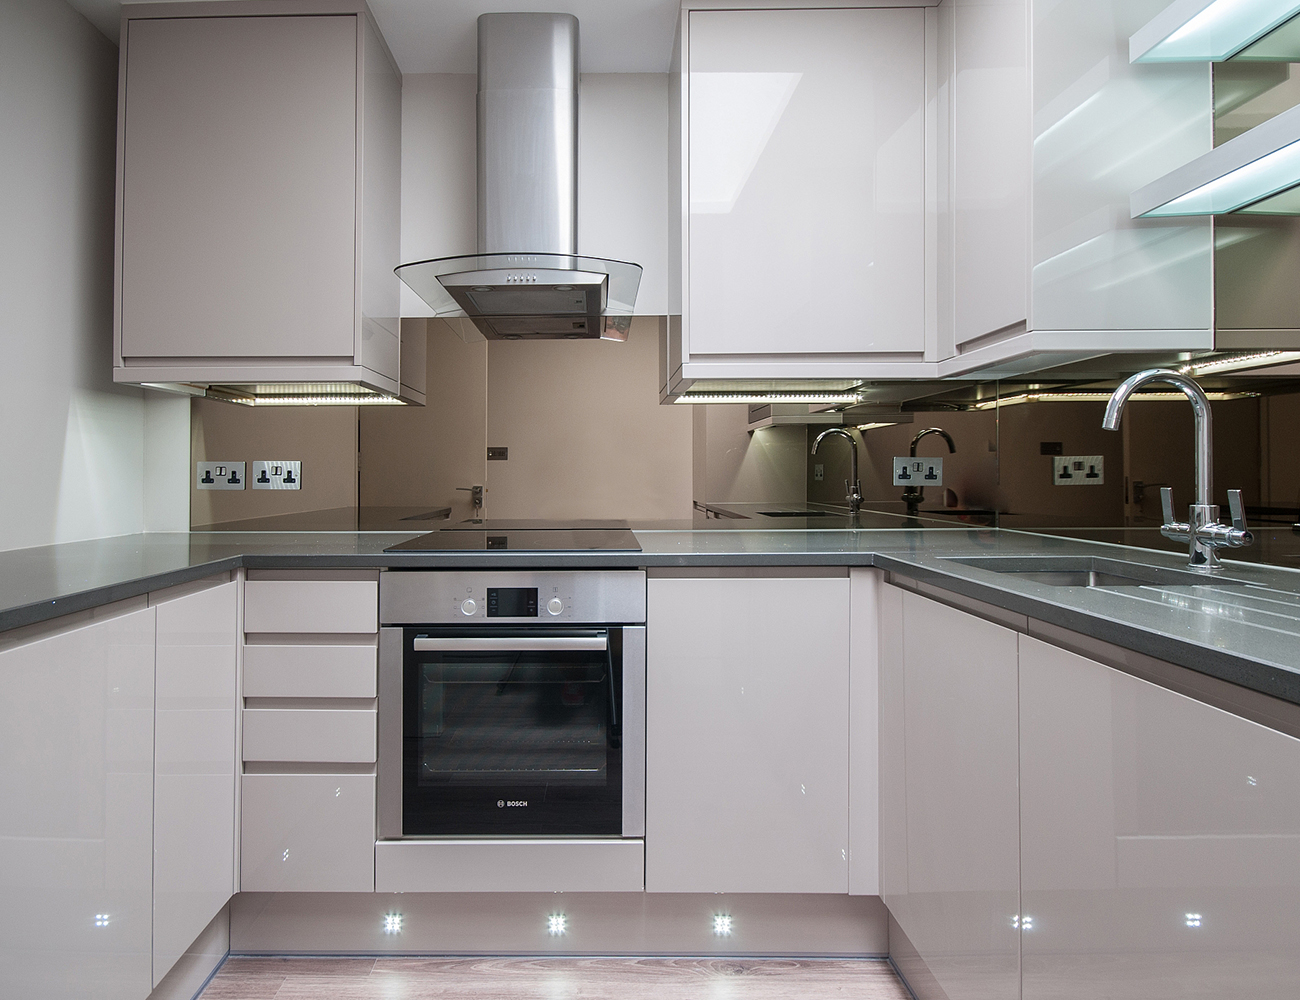 Kitchen Fit-Out (Worktops, Upstands, Floors & Walls)